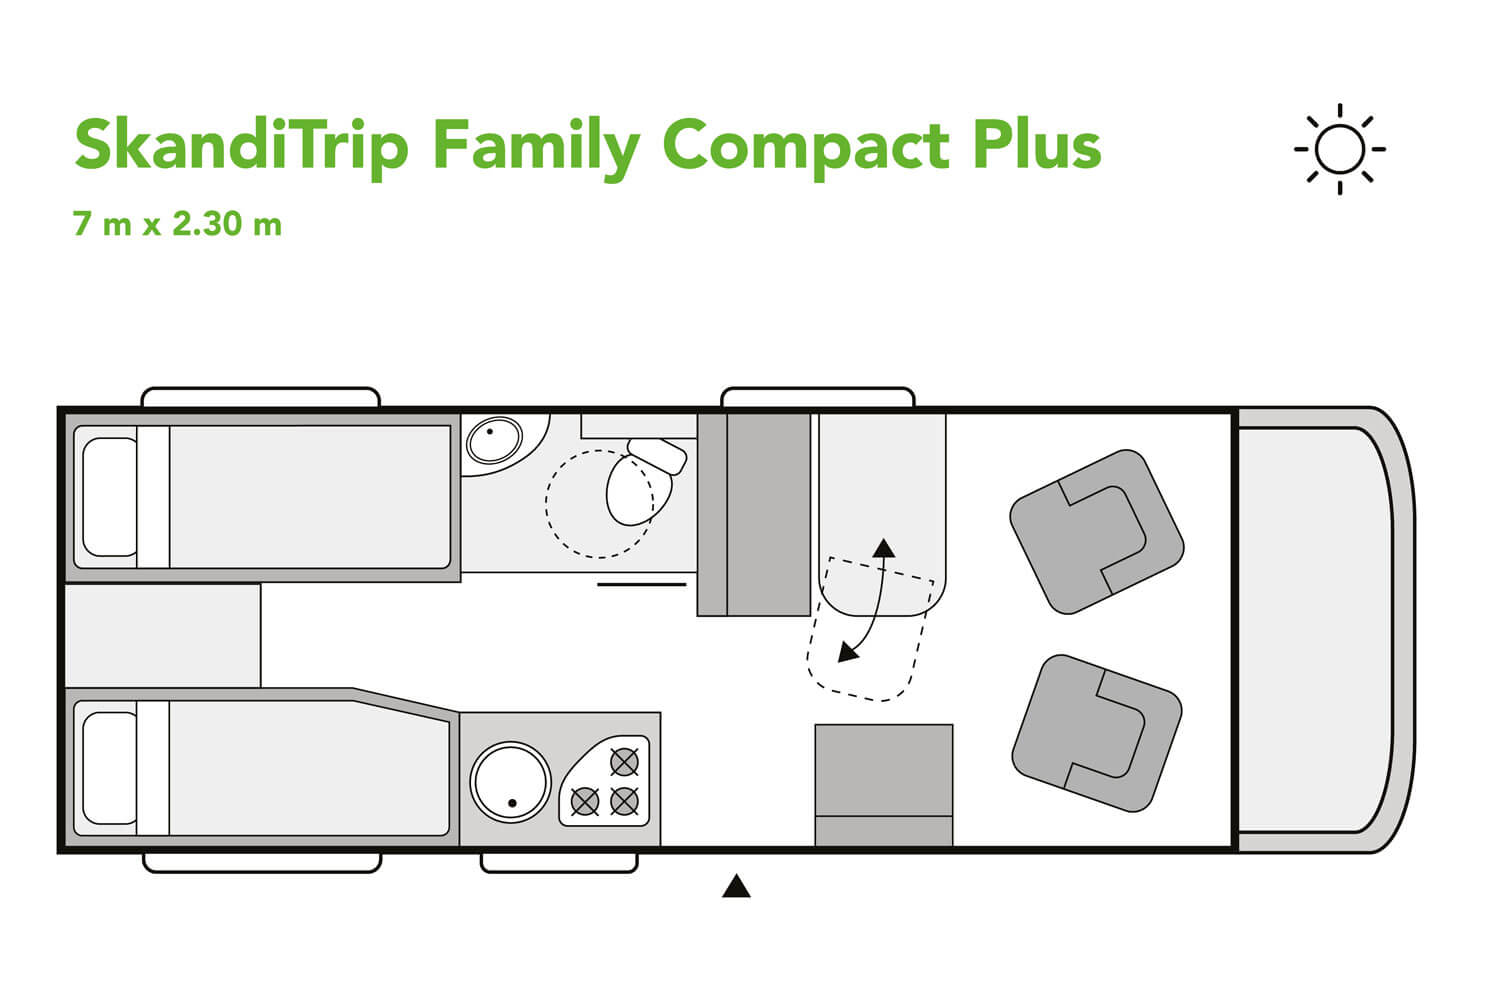 SkandiTrip small motorhome nighttime blueprint